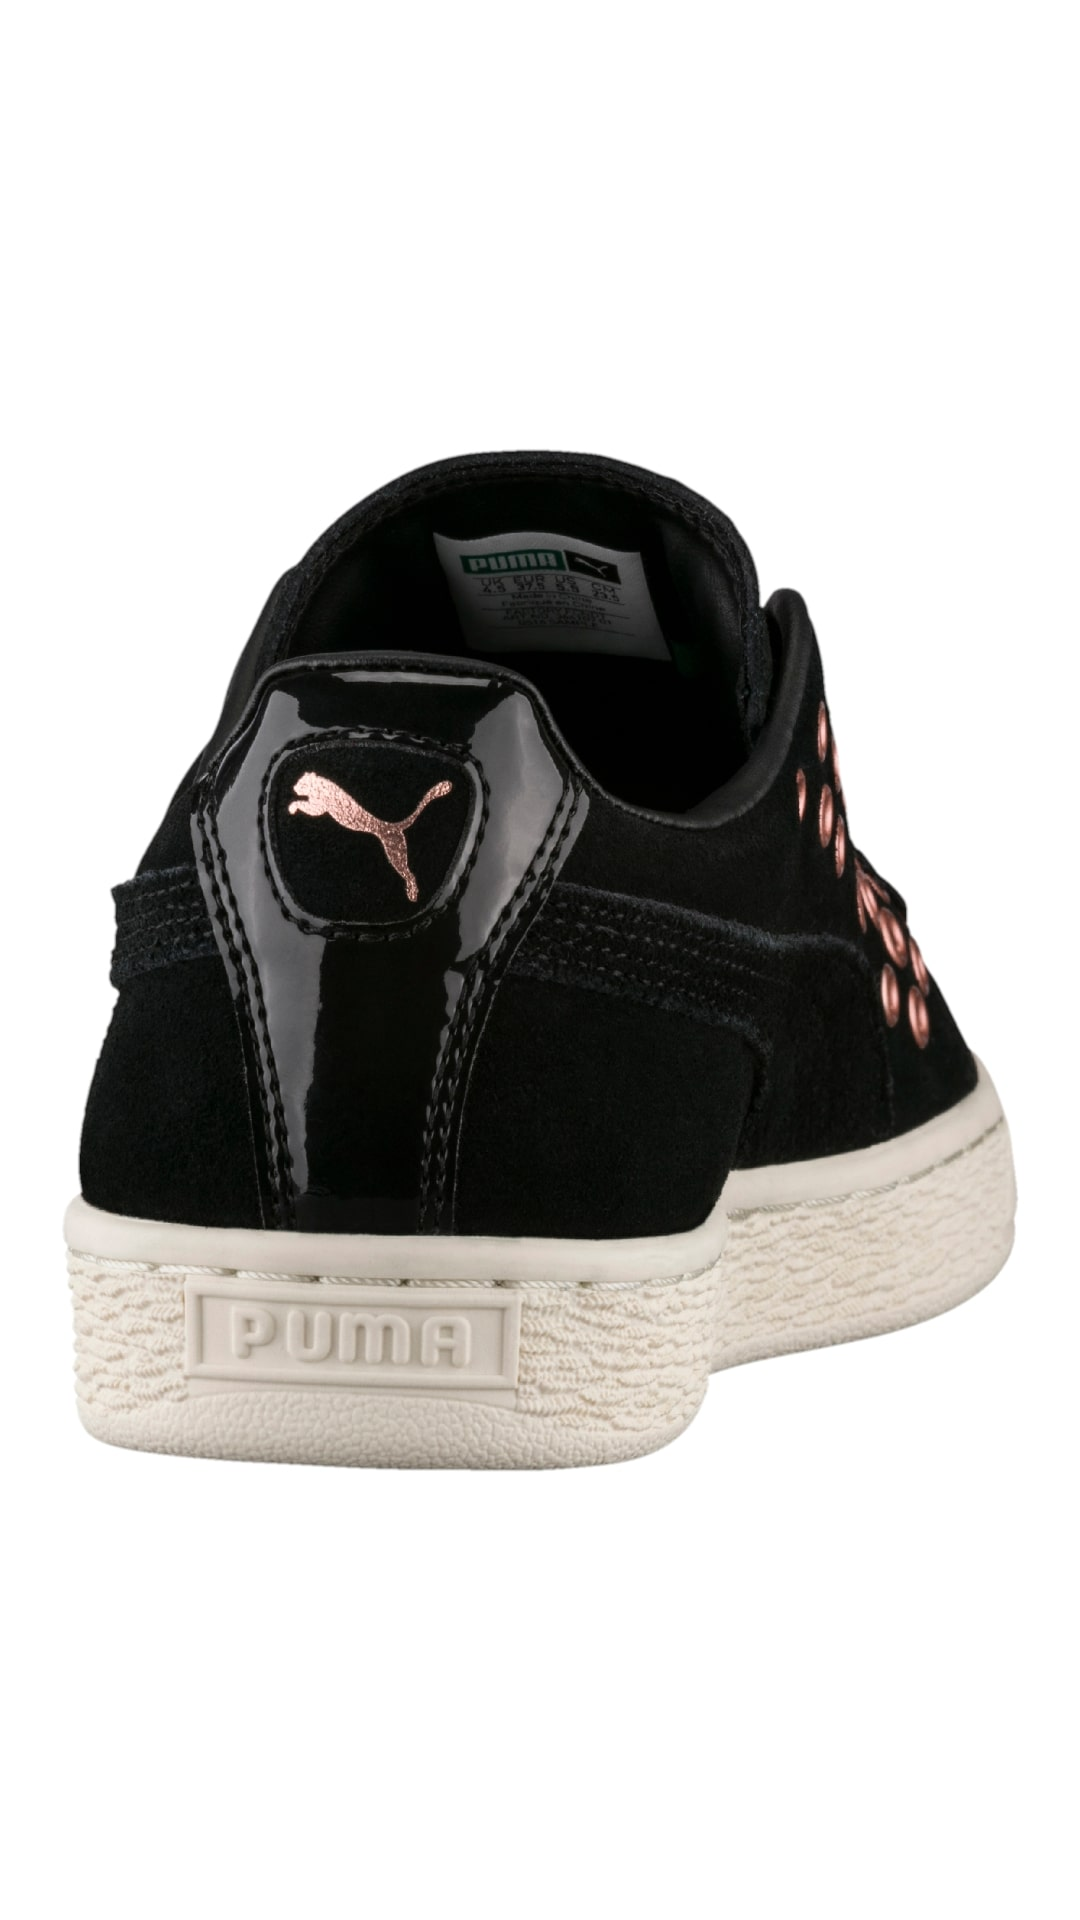 6b16f5d24de724 Buy Puma Women Black Sneaker Shoes Online at Low Prices in India -  Paytmmall.com